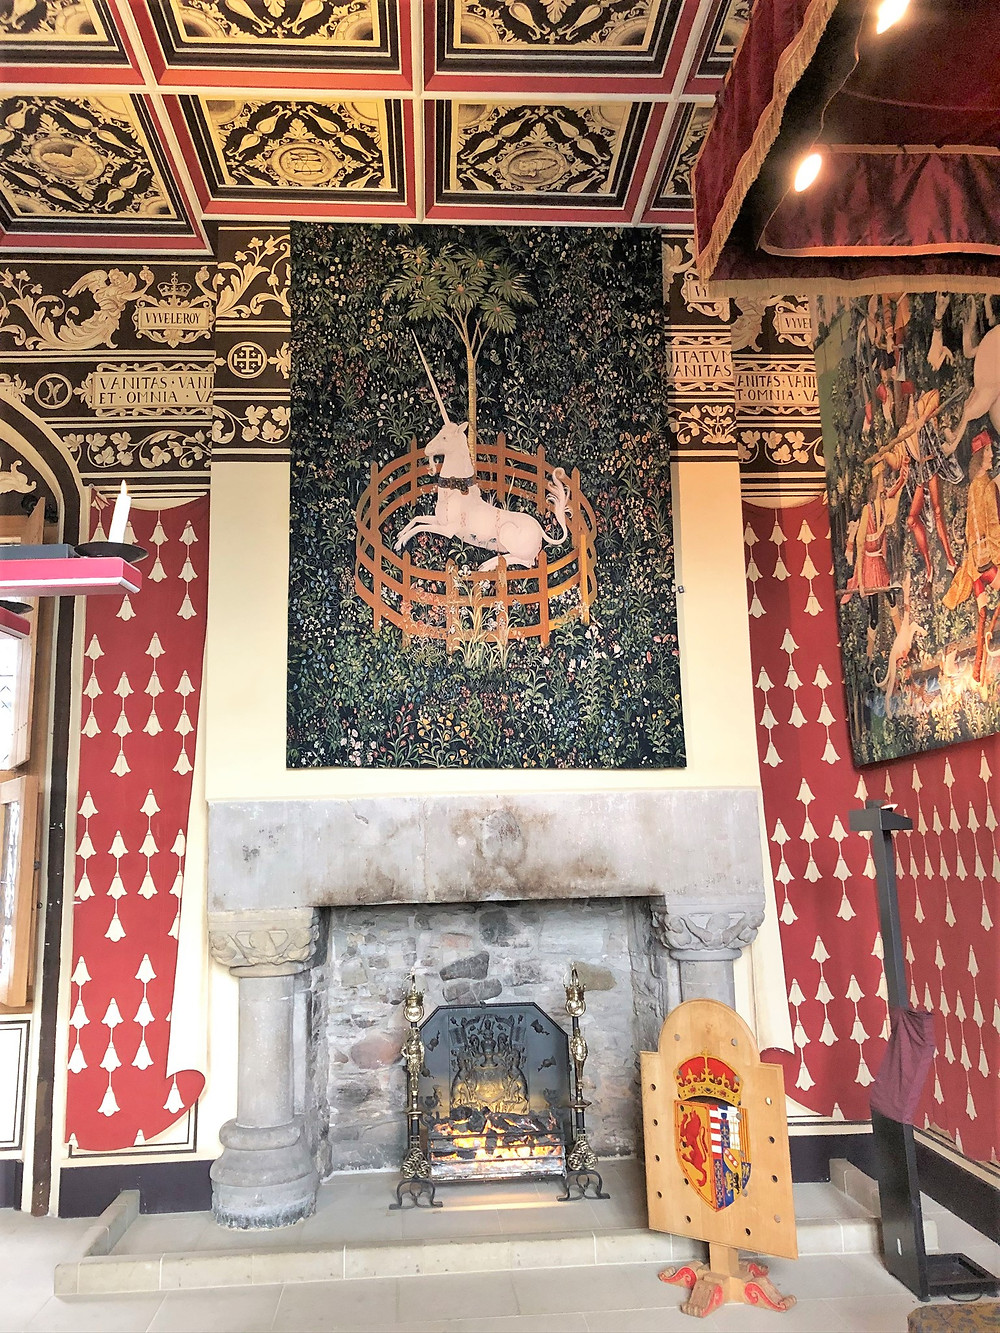 The walls of the Queen's  Inner Chamber at Stirling Castle were painted using trompe l'oeil